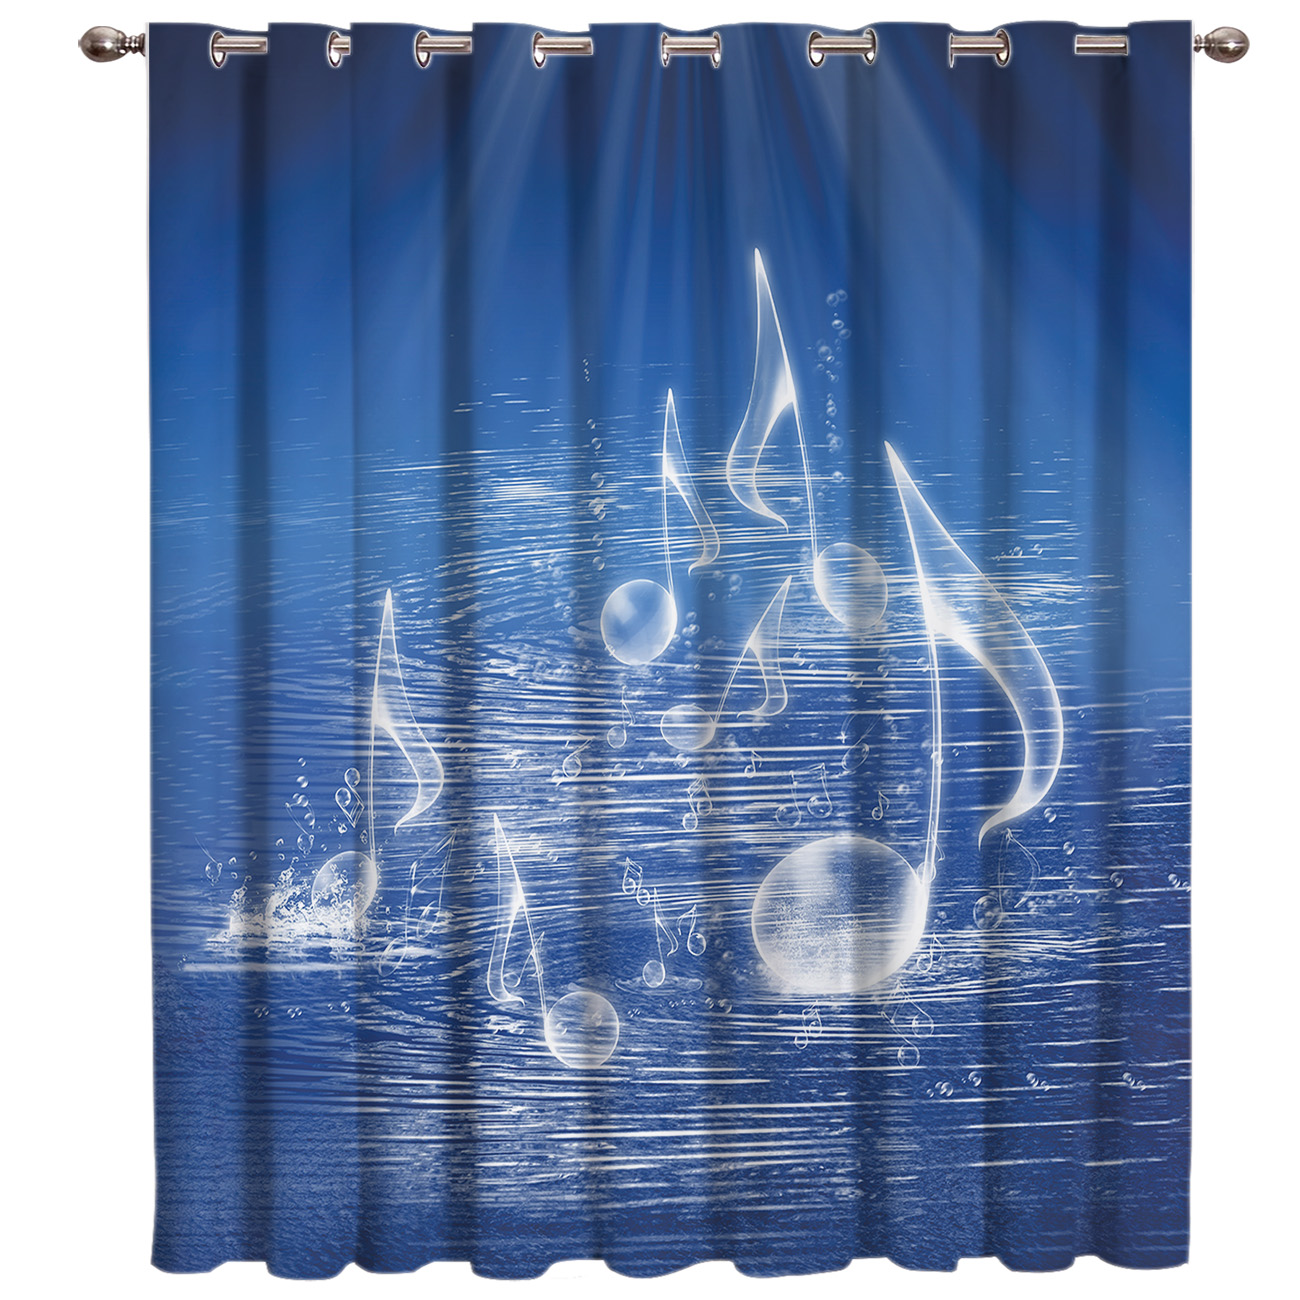 Blue Music Symbol Window Treatments Curtains Valance Bathroom Decor Outdoor Kitchen Indoor Curtain Panels With Grommets